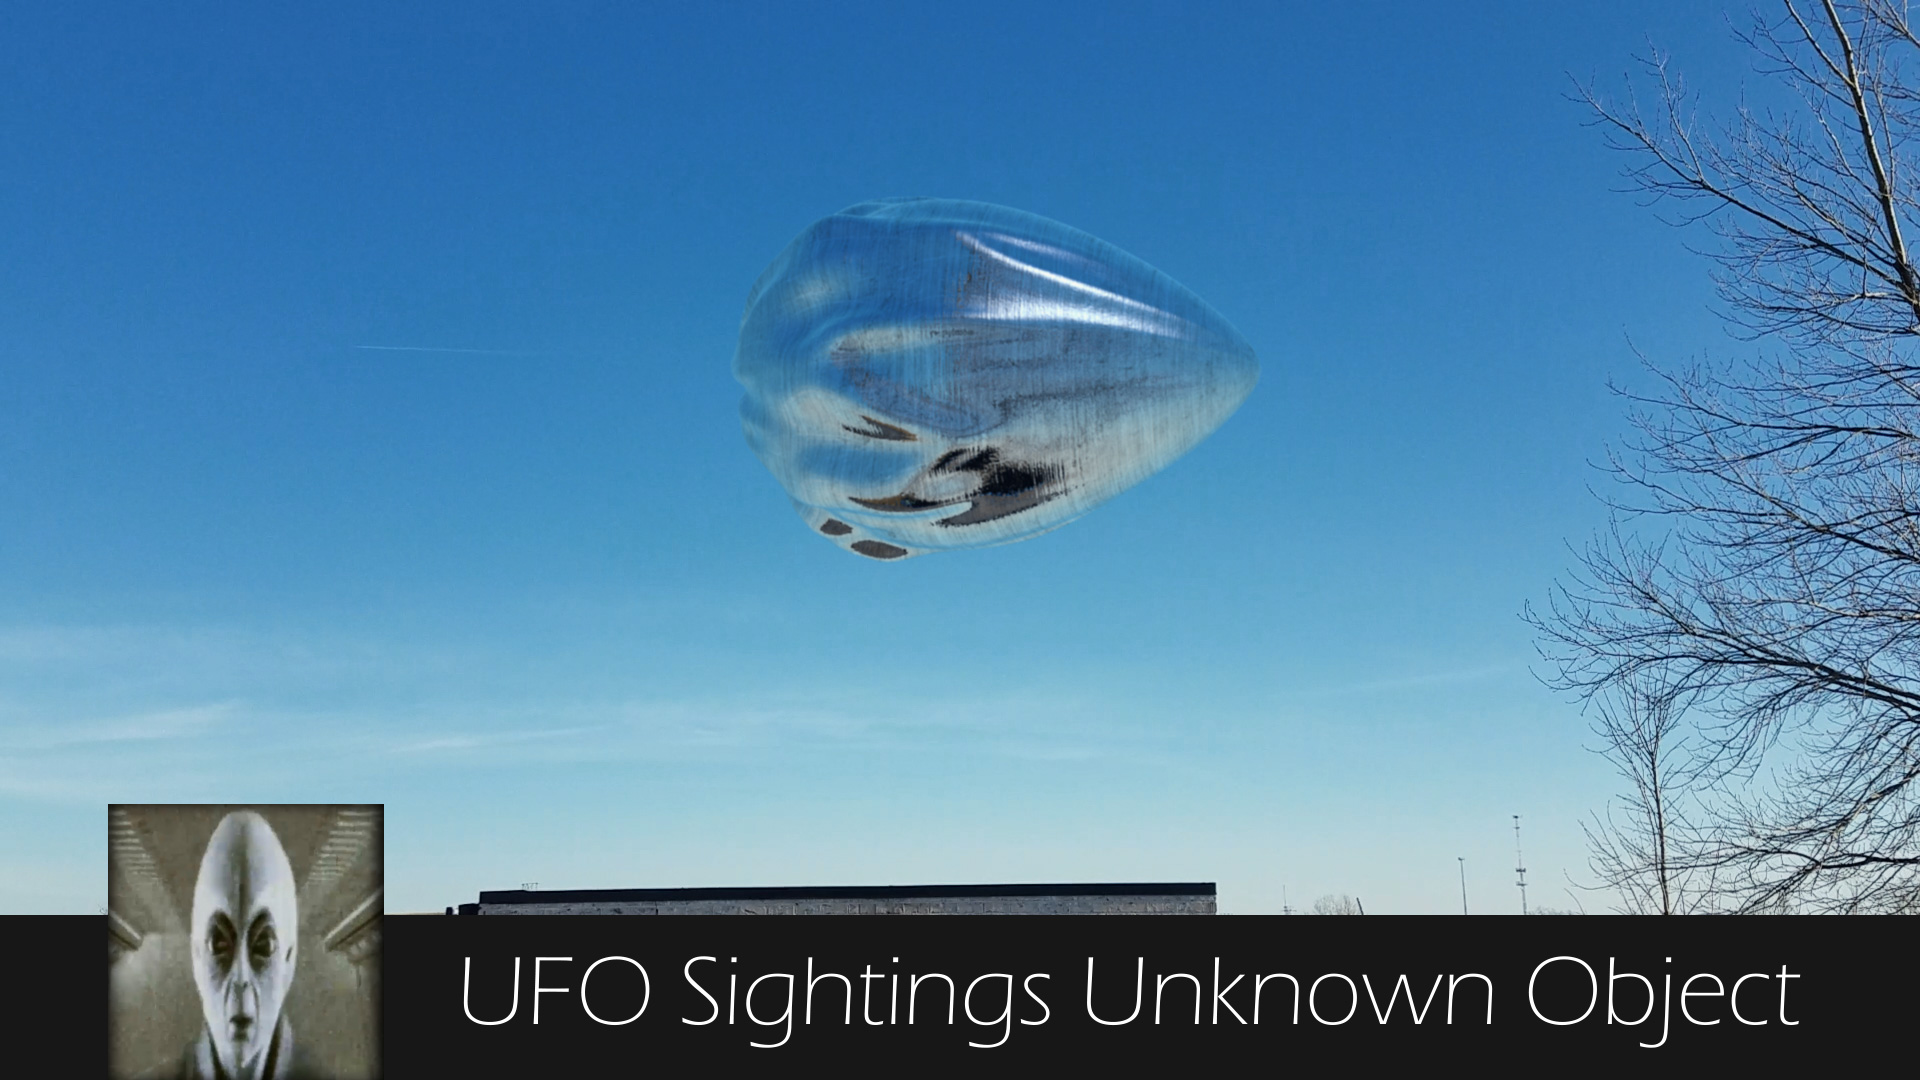 UFO Sighting Unknown Object April 15th 2017 | iufosightings